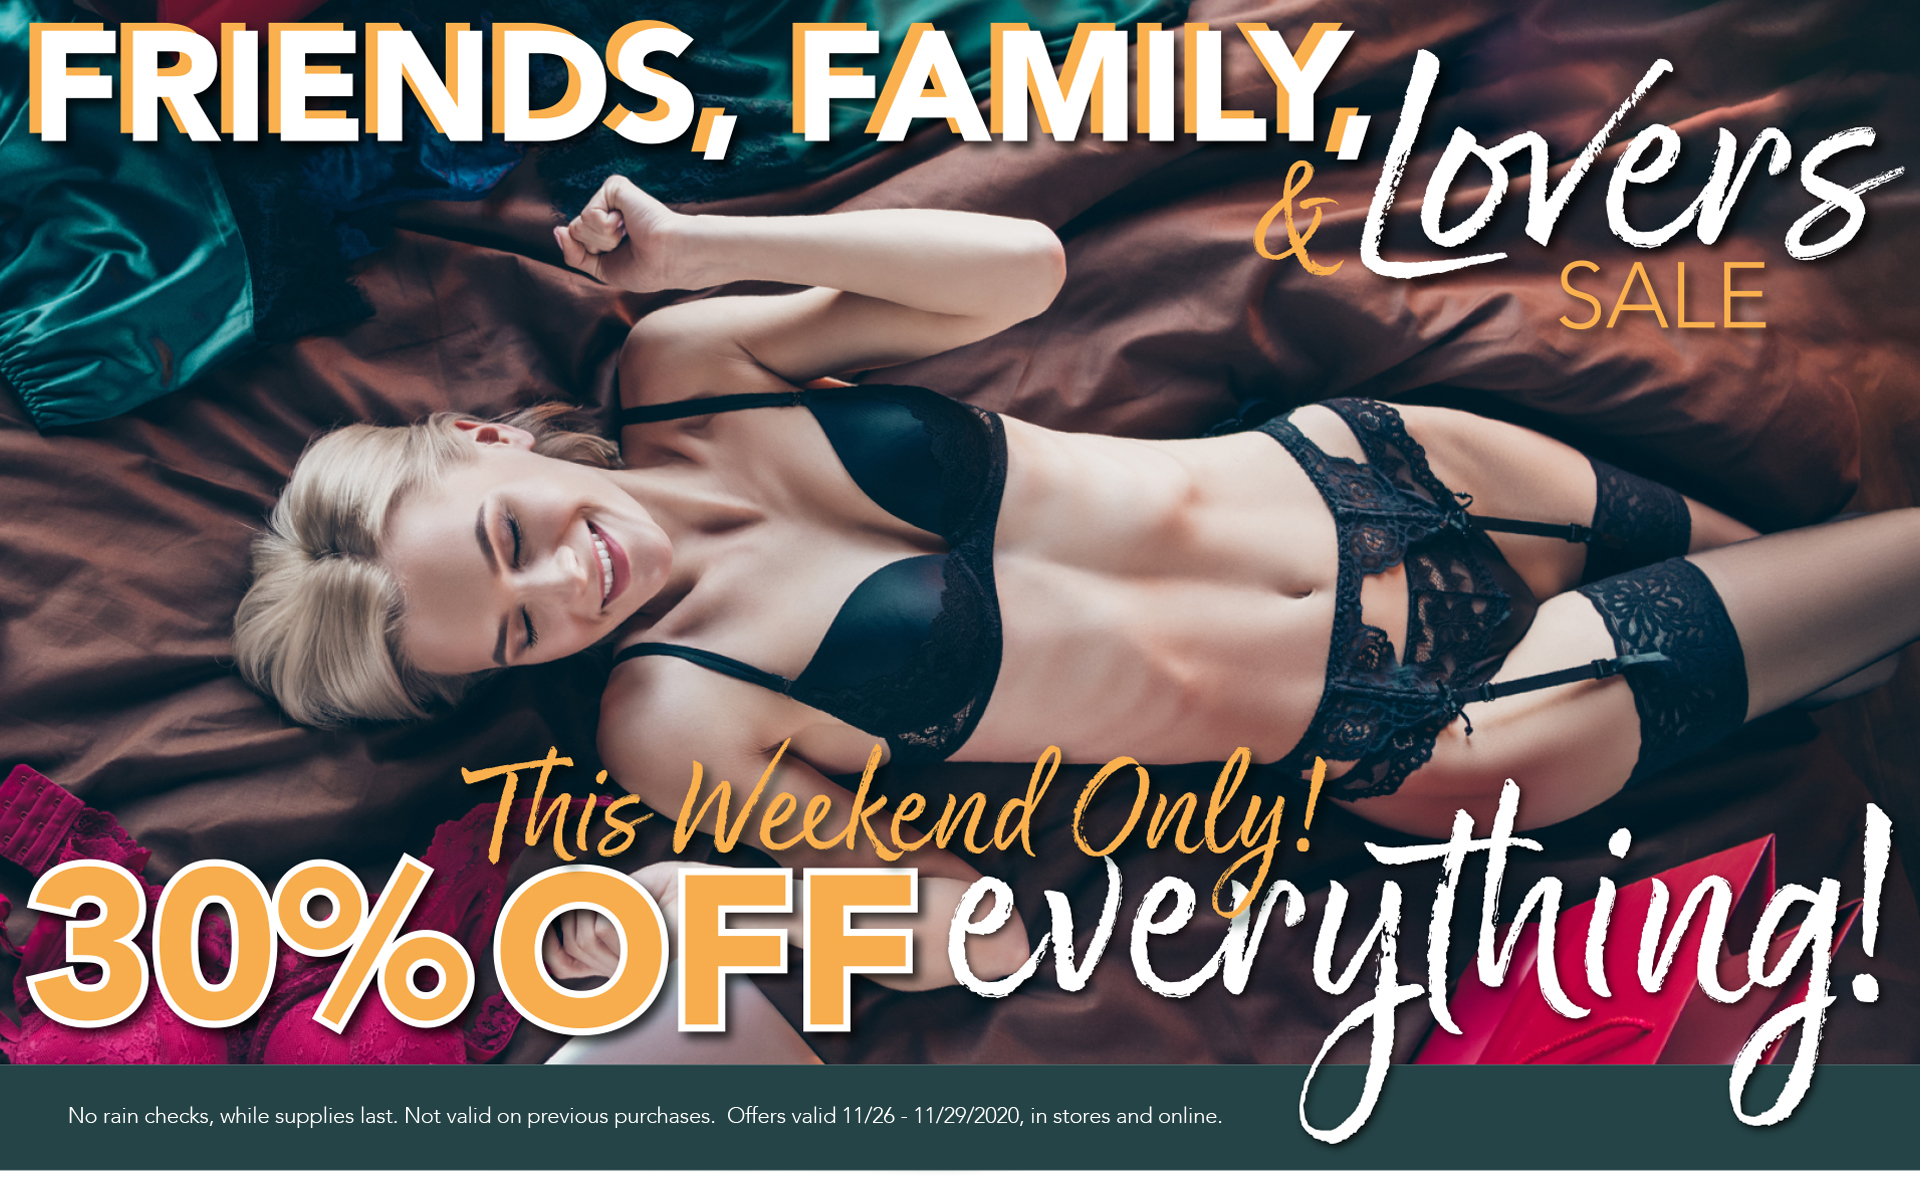 Friends, Family, & Lovers Sale - This weekend only. 30% OFF everything! -  No rain checks, while supplies last. Not valid on previous purchases.  Offers valid 11/26 - 11/28/2020, in stores and online.